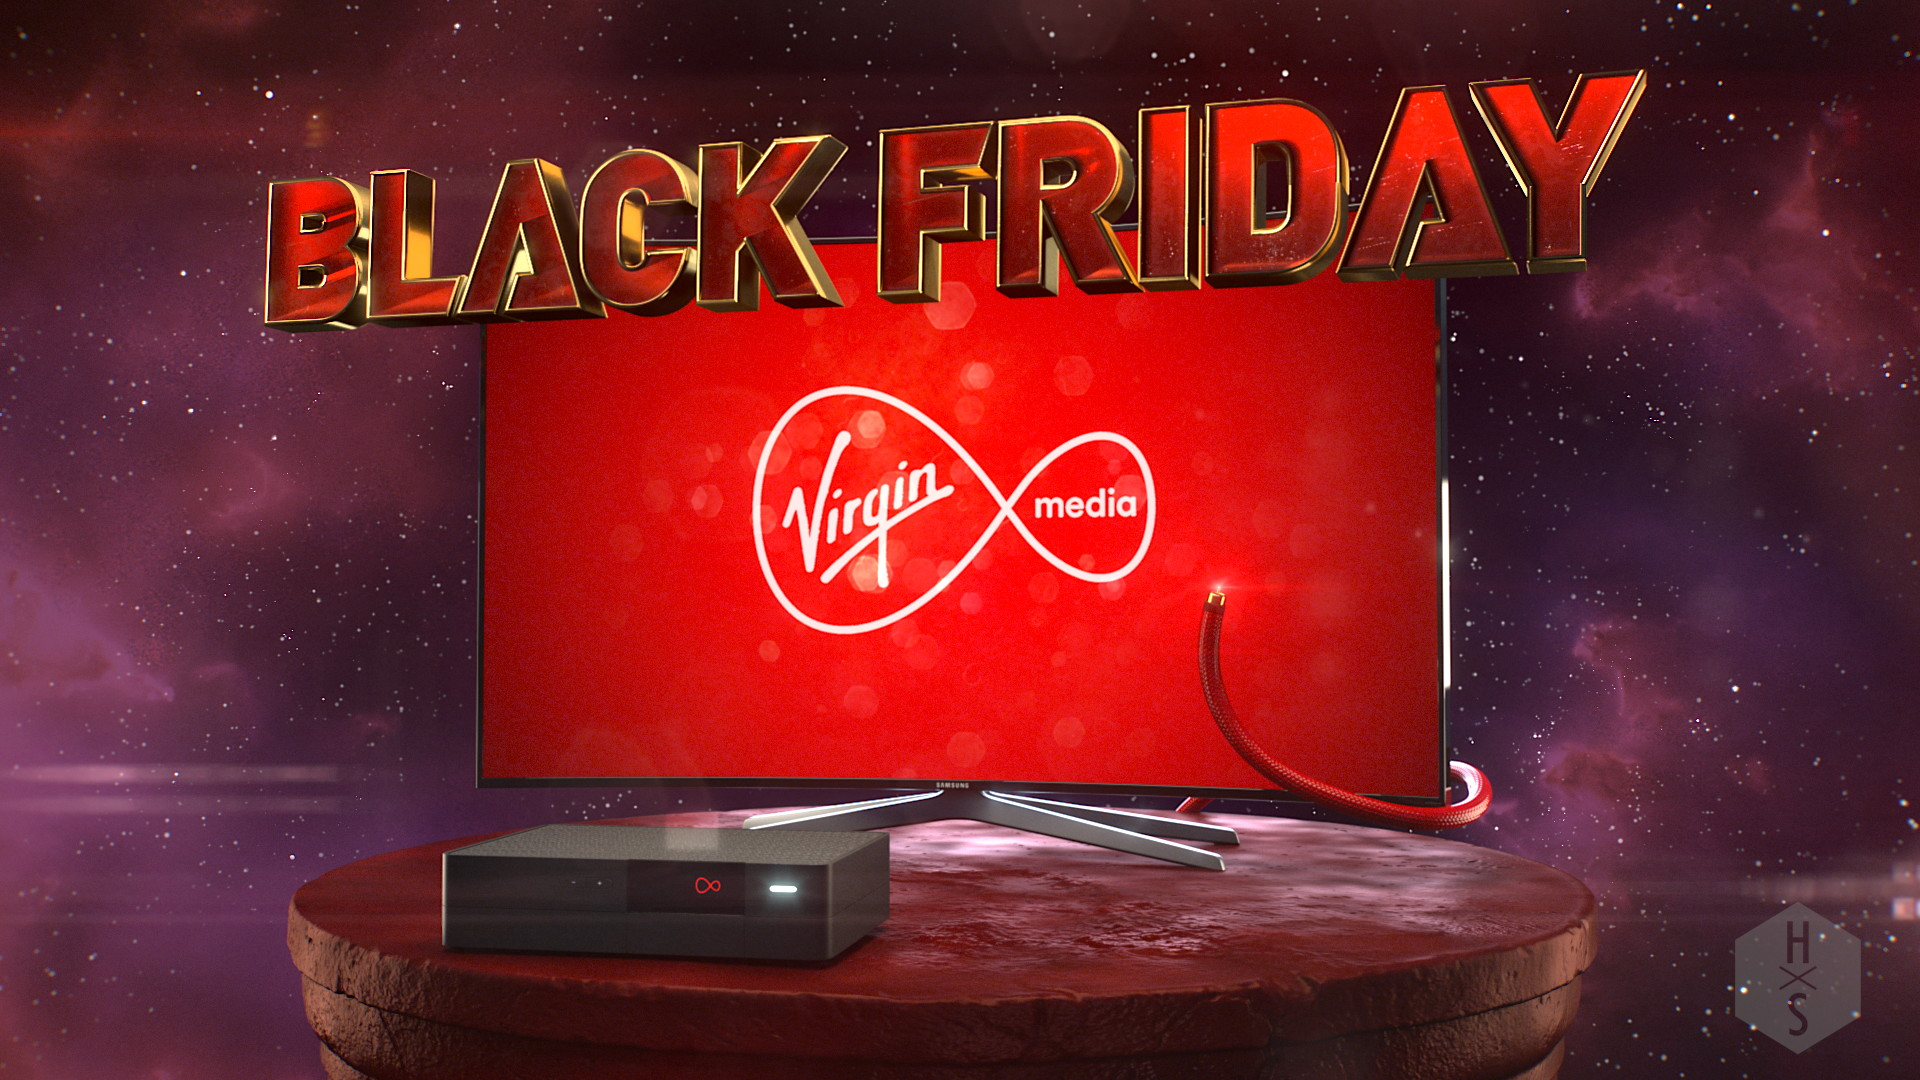 Hi-Sim_Virgin_BlackFriday_Styleframe_004.jpg